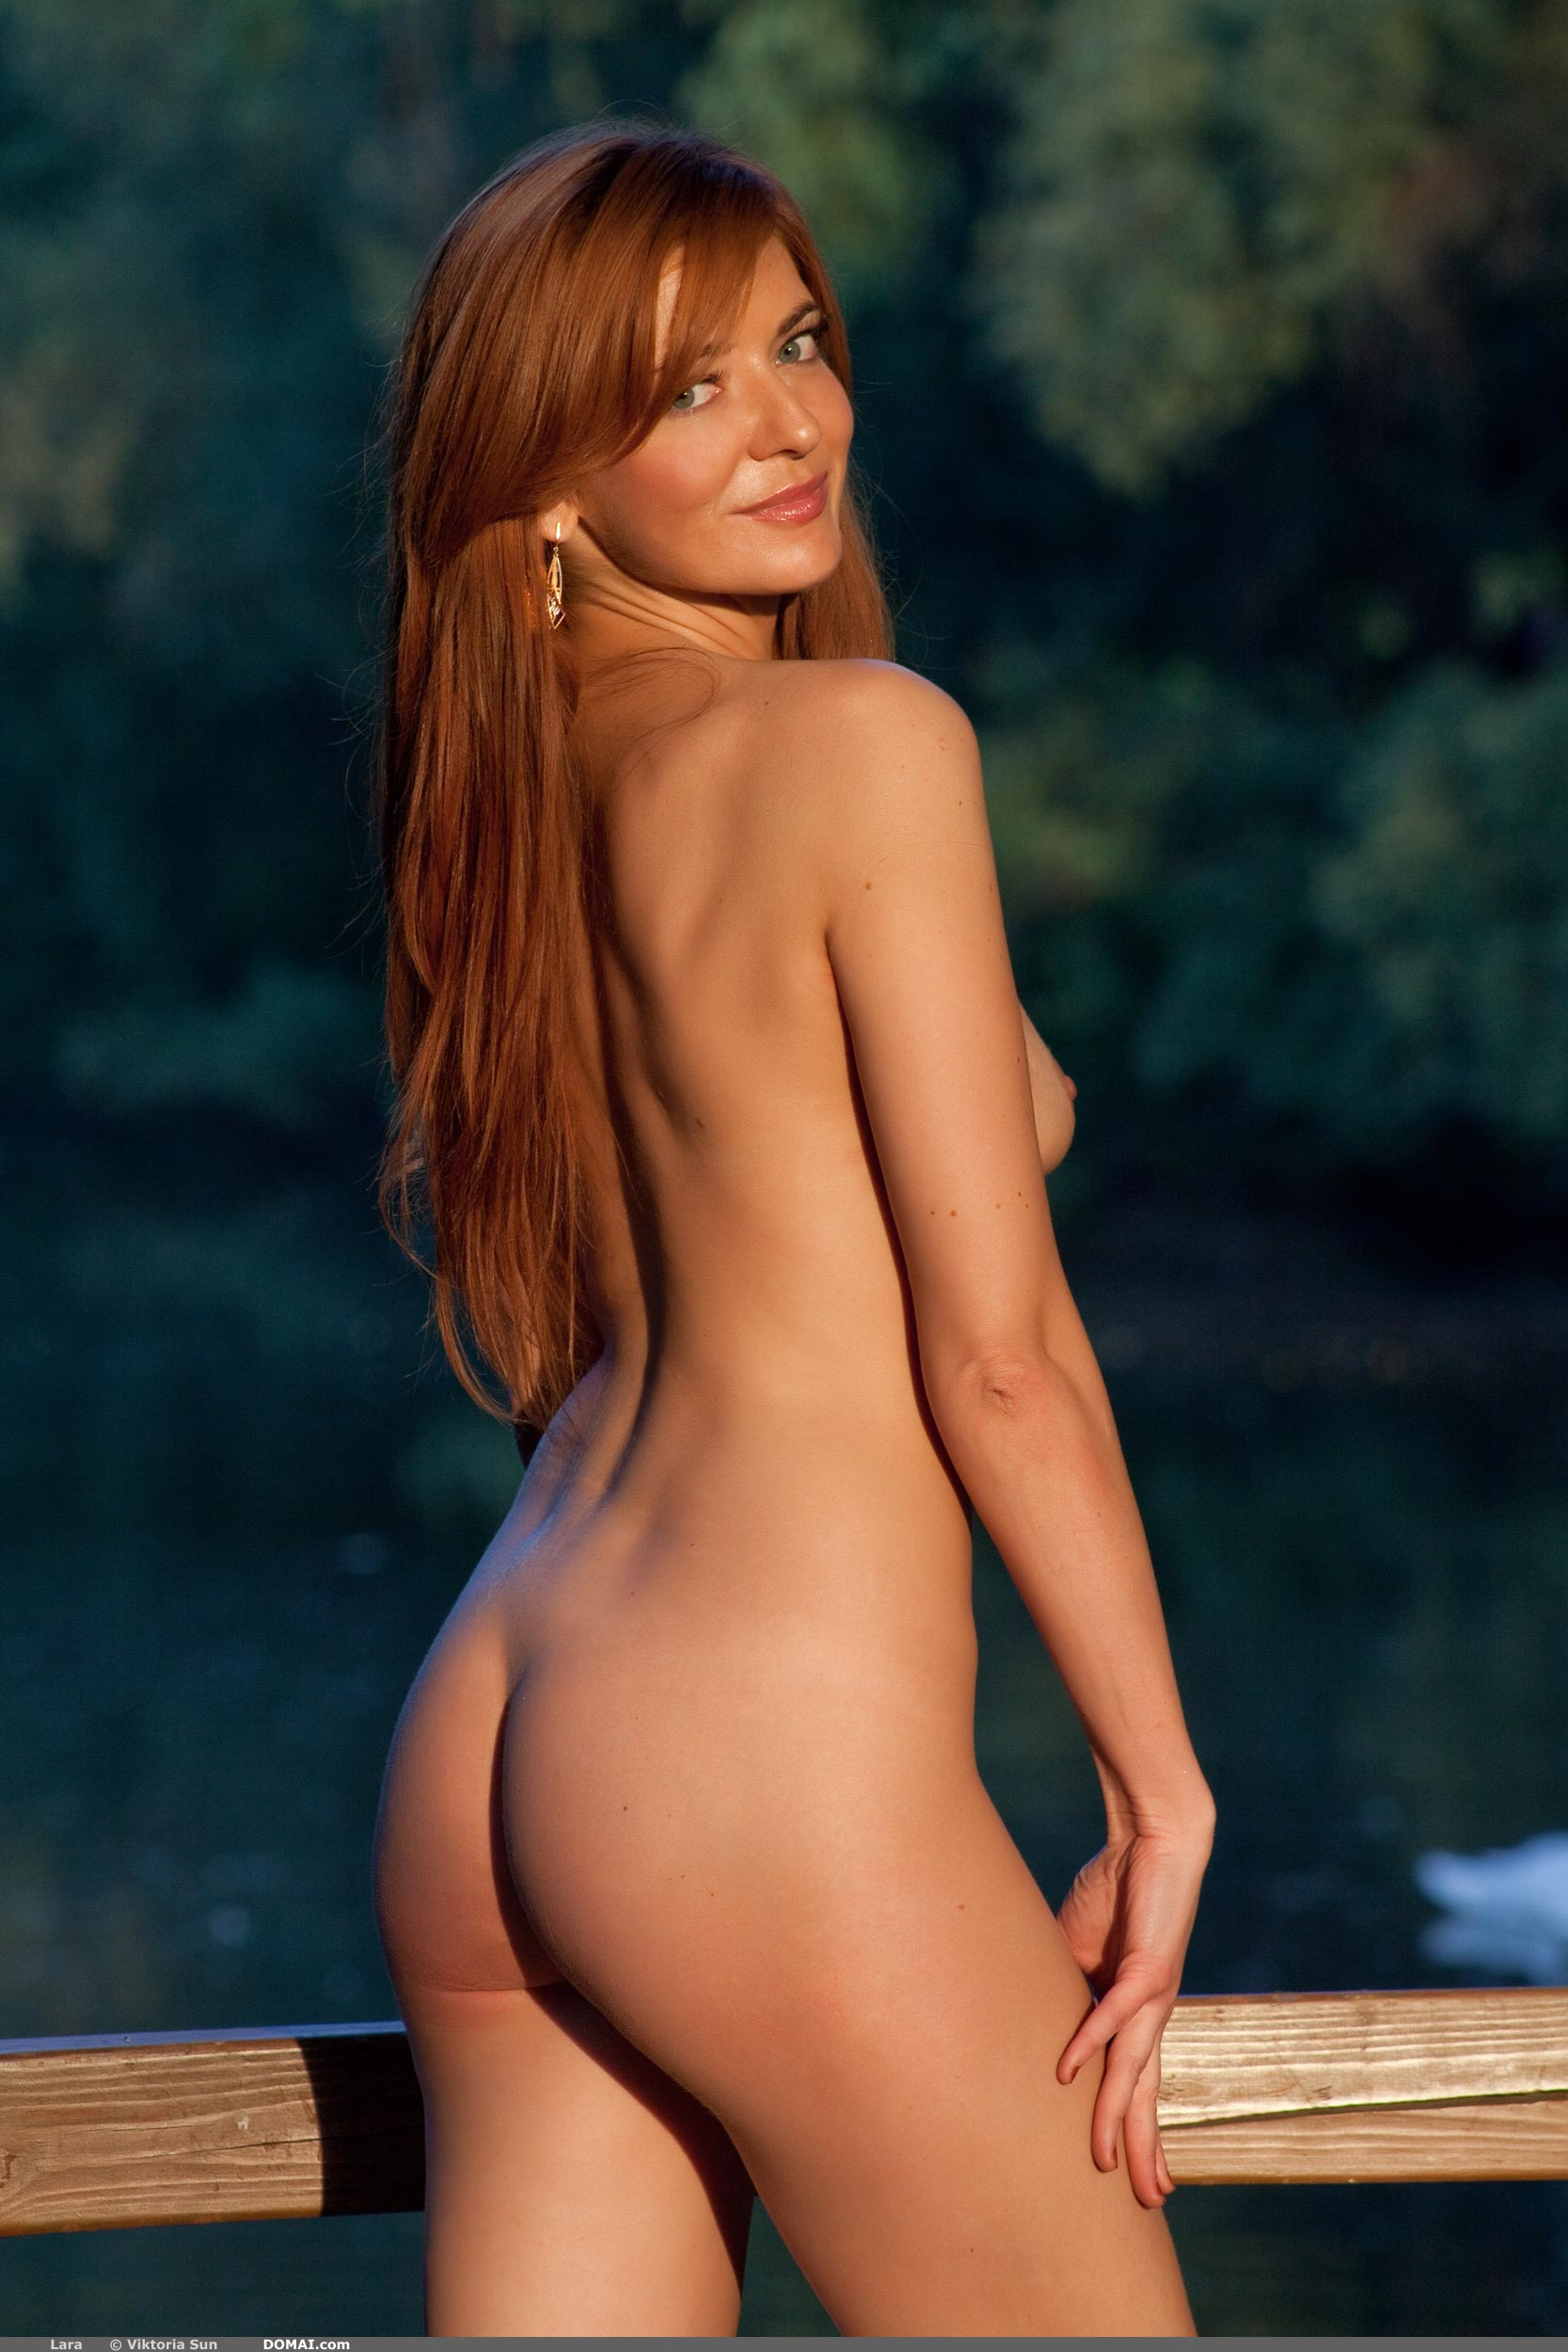 Nude Images Of Beautiful Women